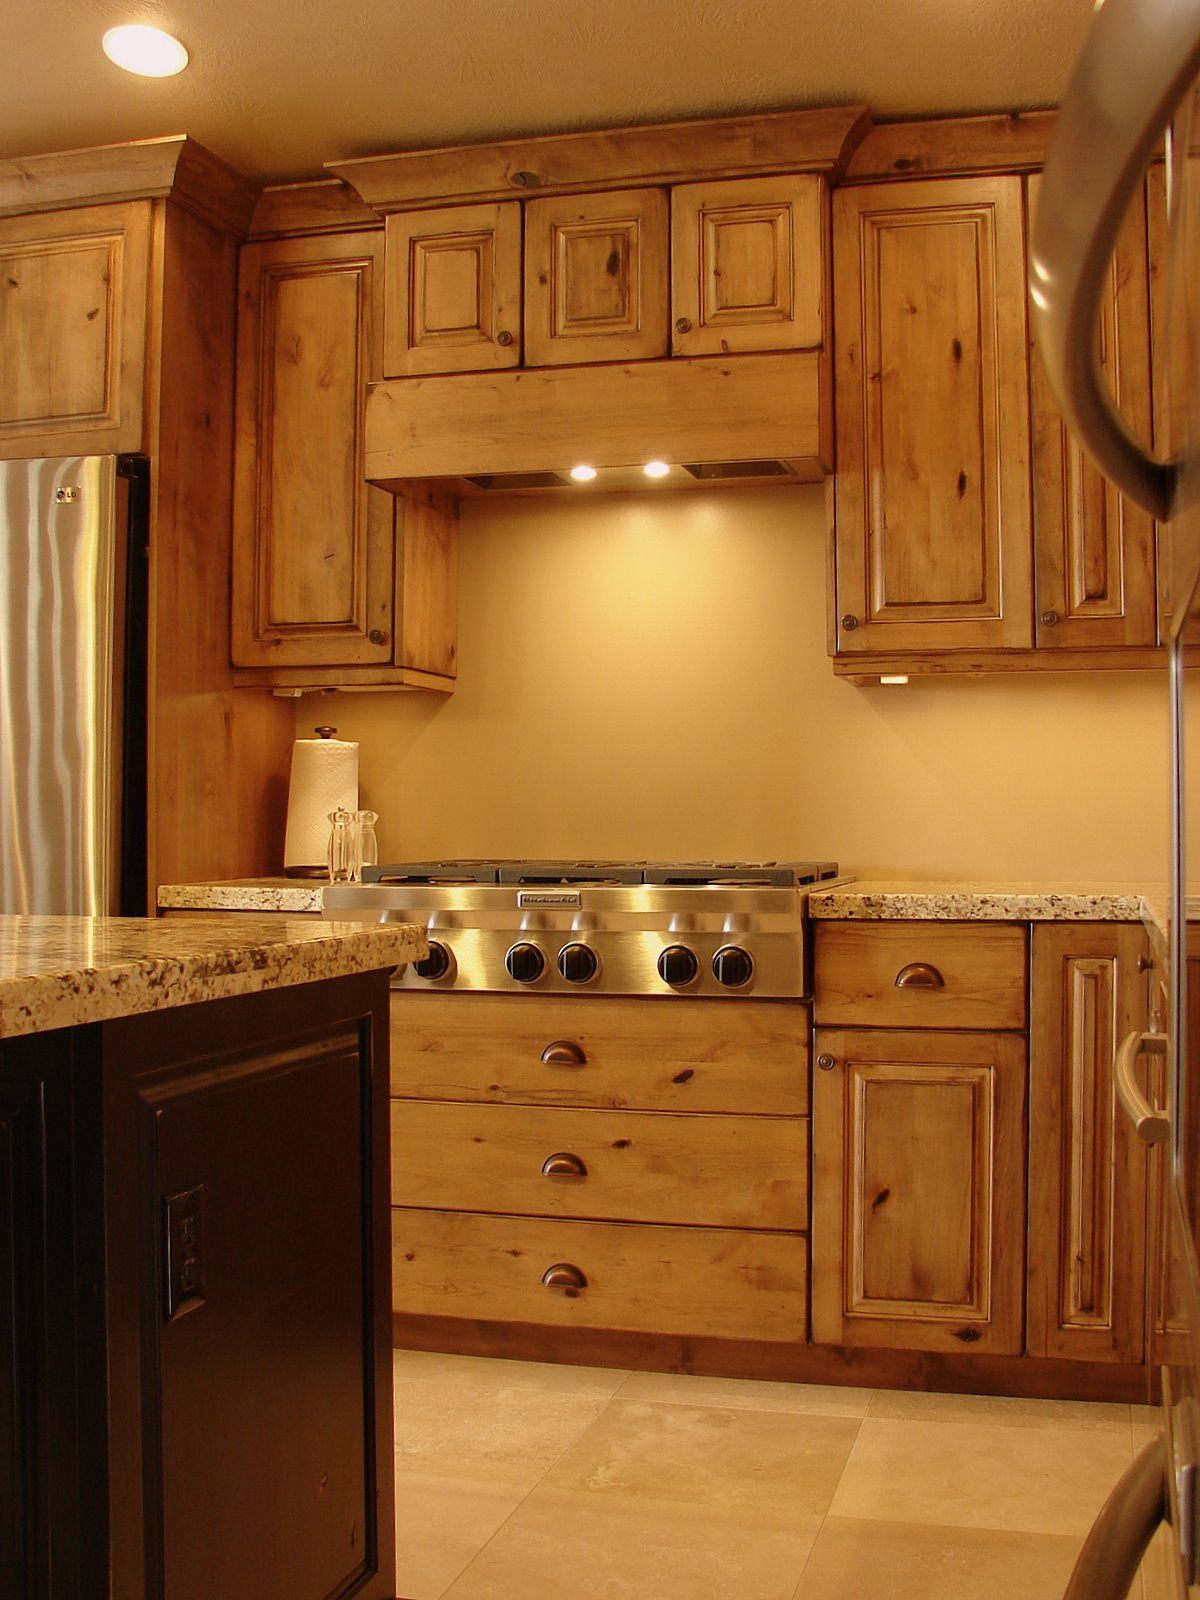 Rustic Kitchen the knotty alder cabinets and natural stone floor